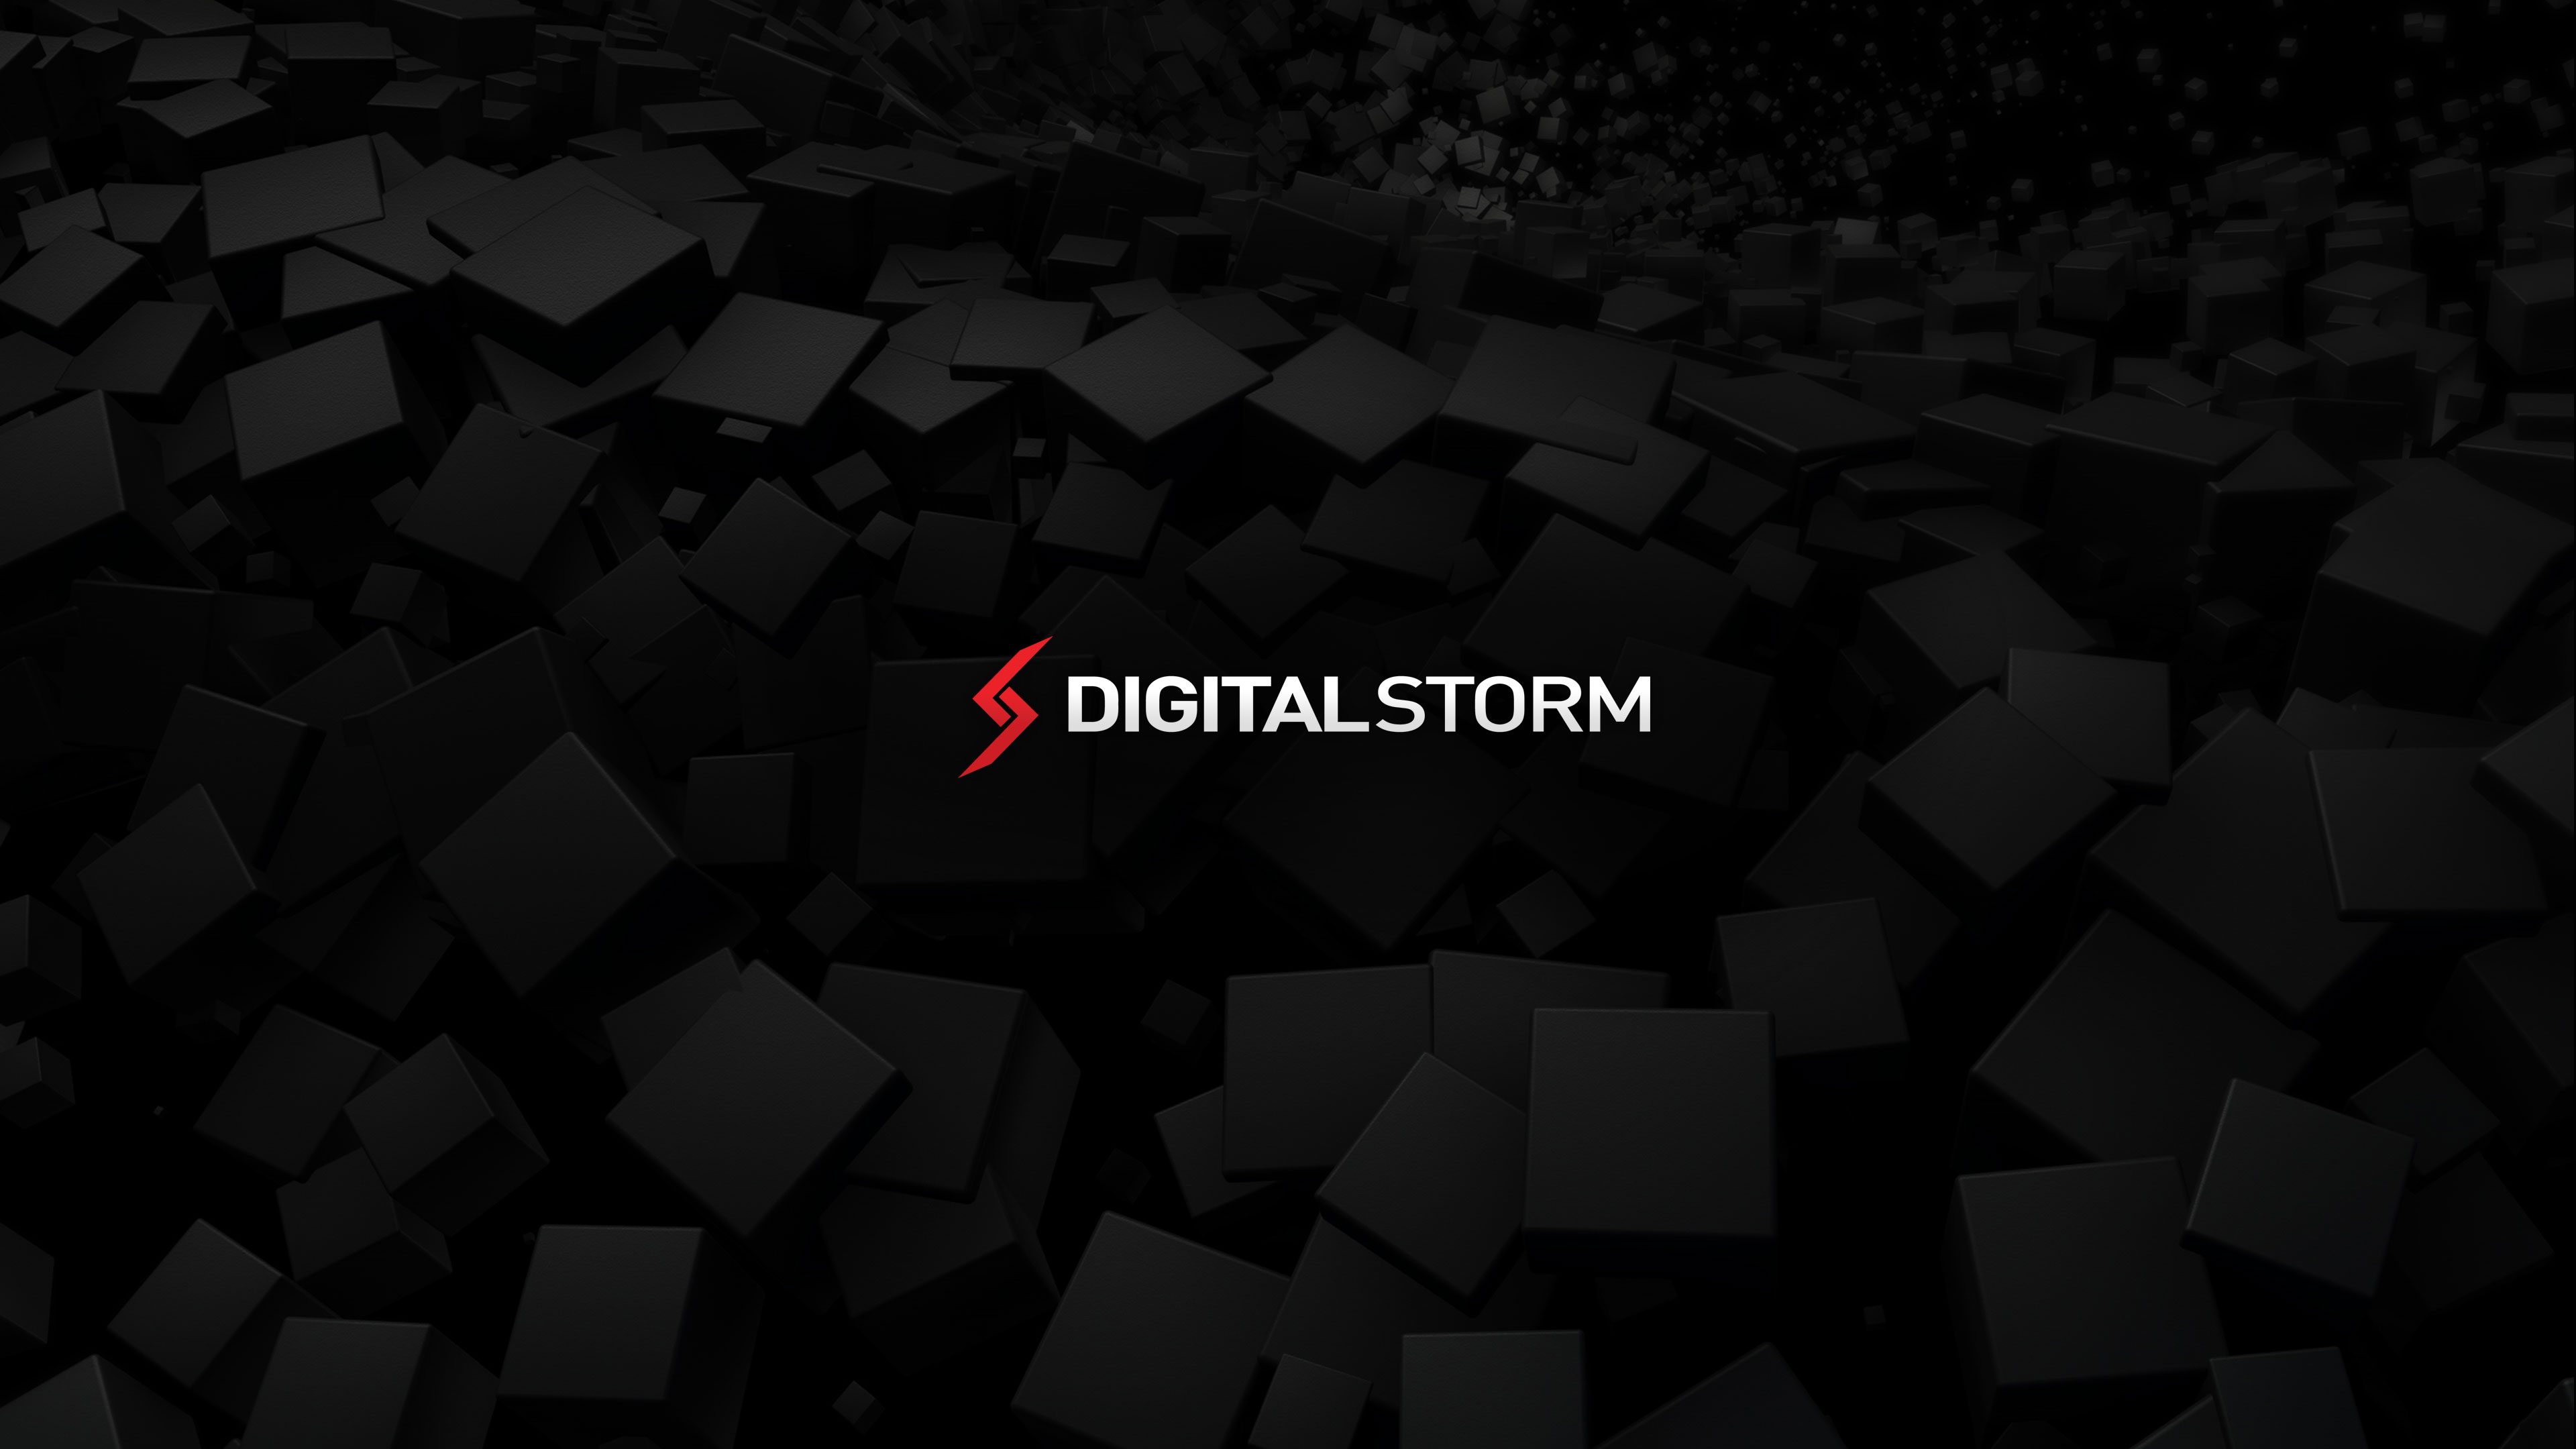 digital storm wallpapers 1920x1200 - photo #8